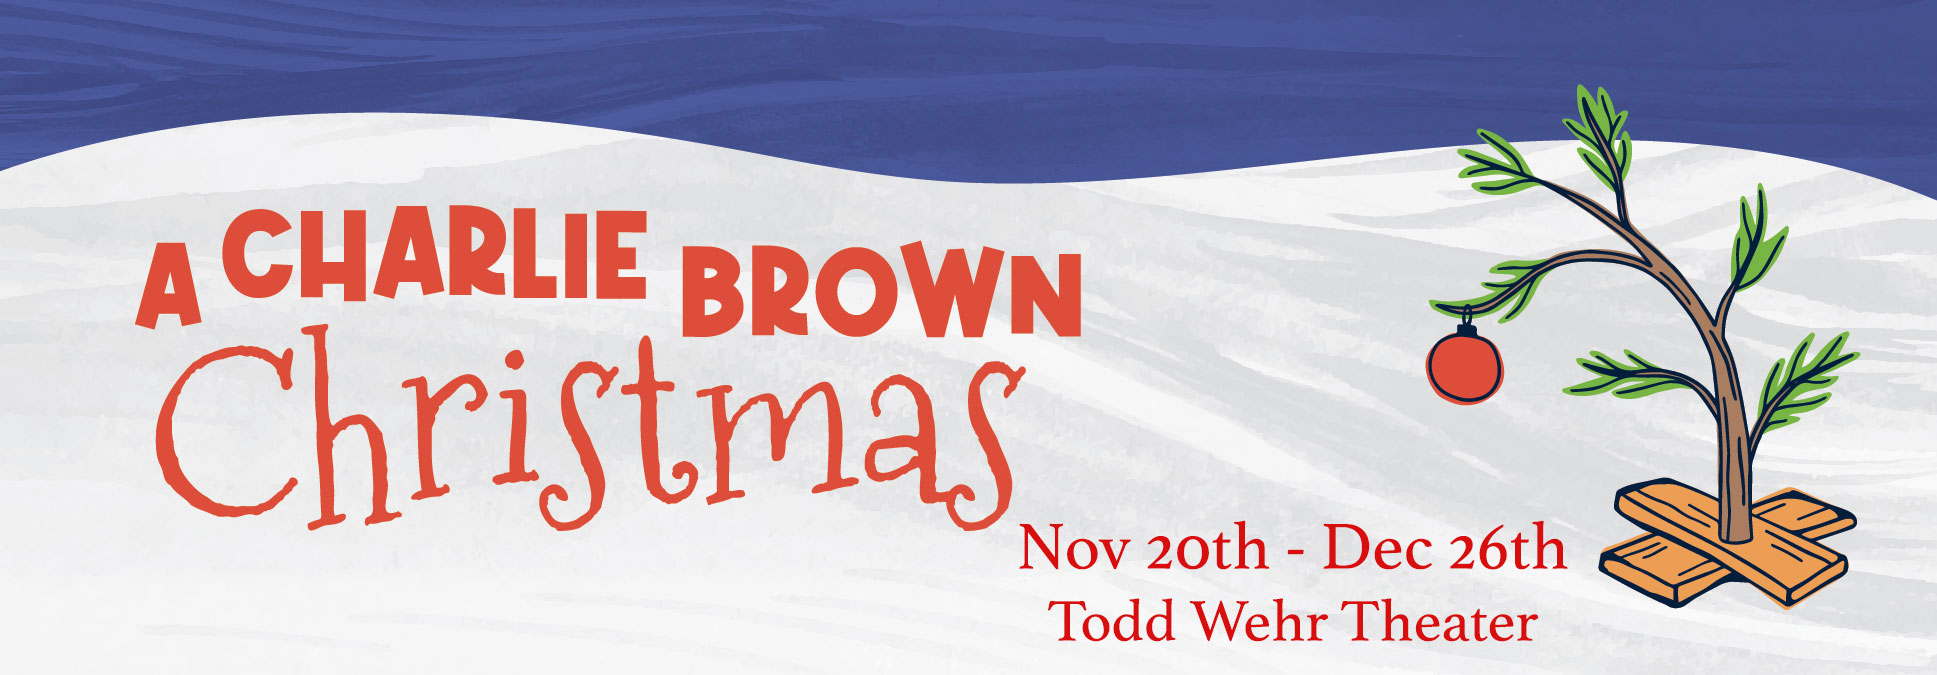 Charlie Brown Christmas at the Marcus Performing Arts Center in Milwaukee